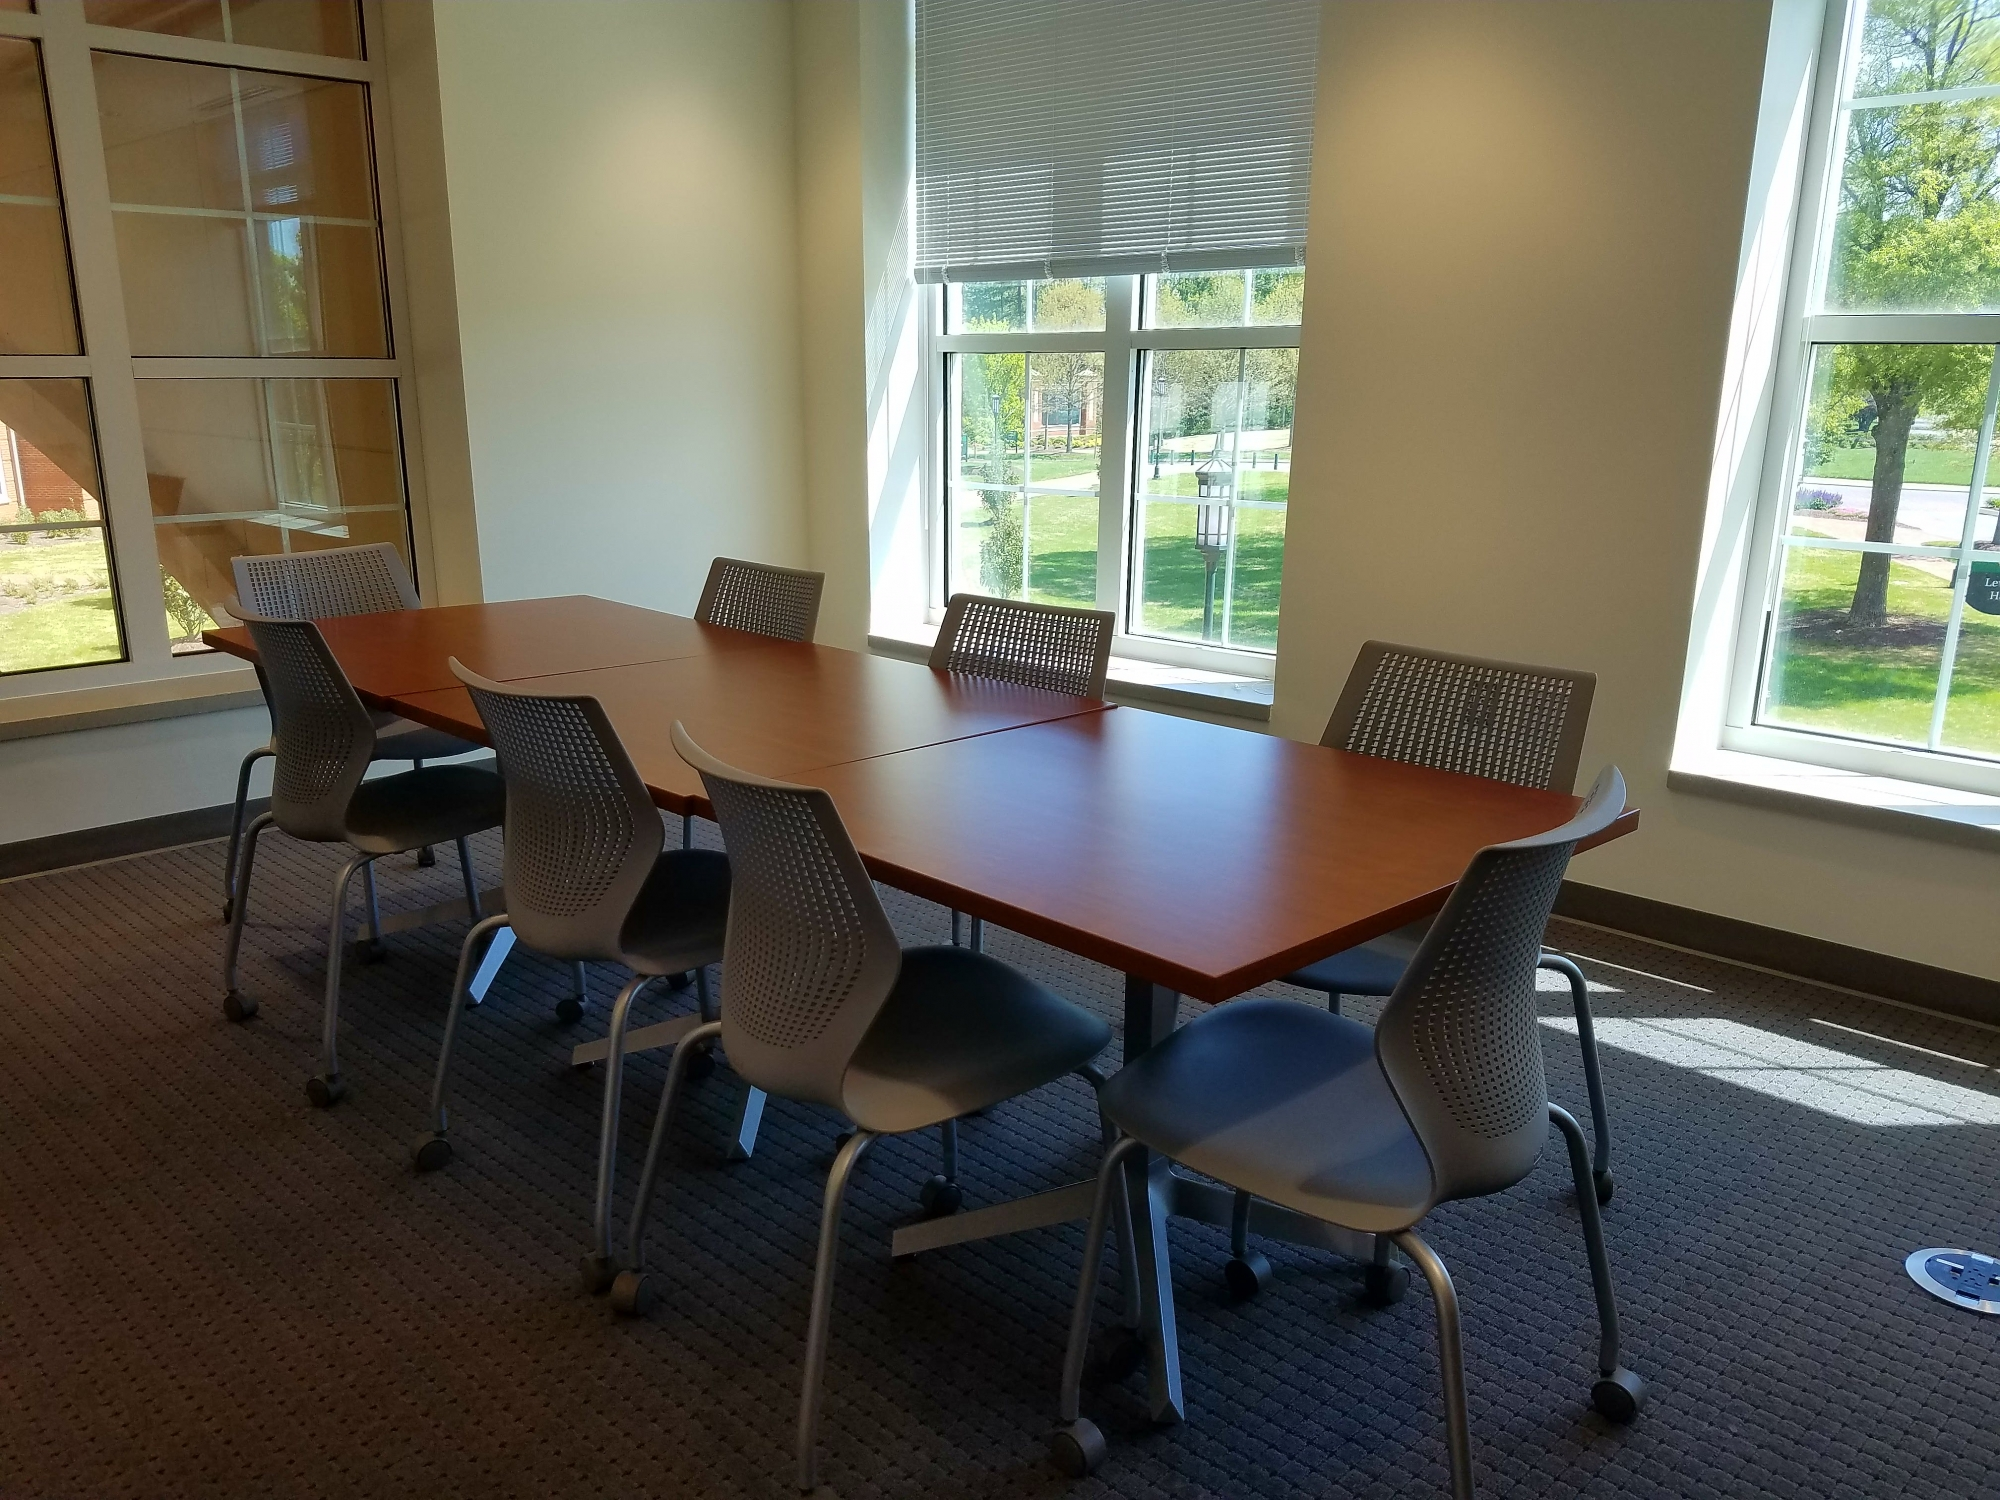 Levine Hall Community Study Room